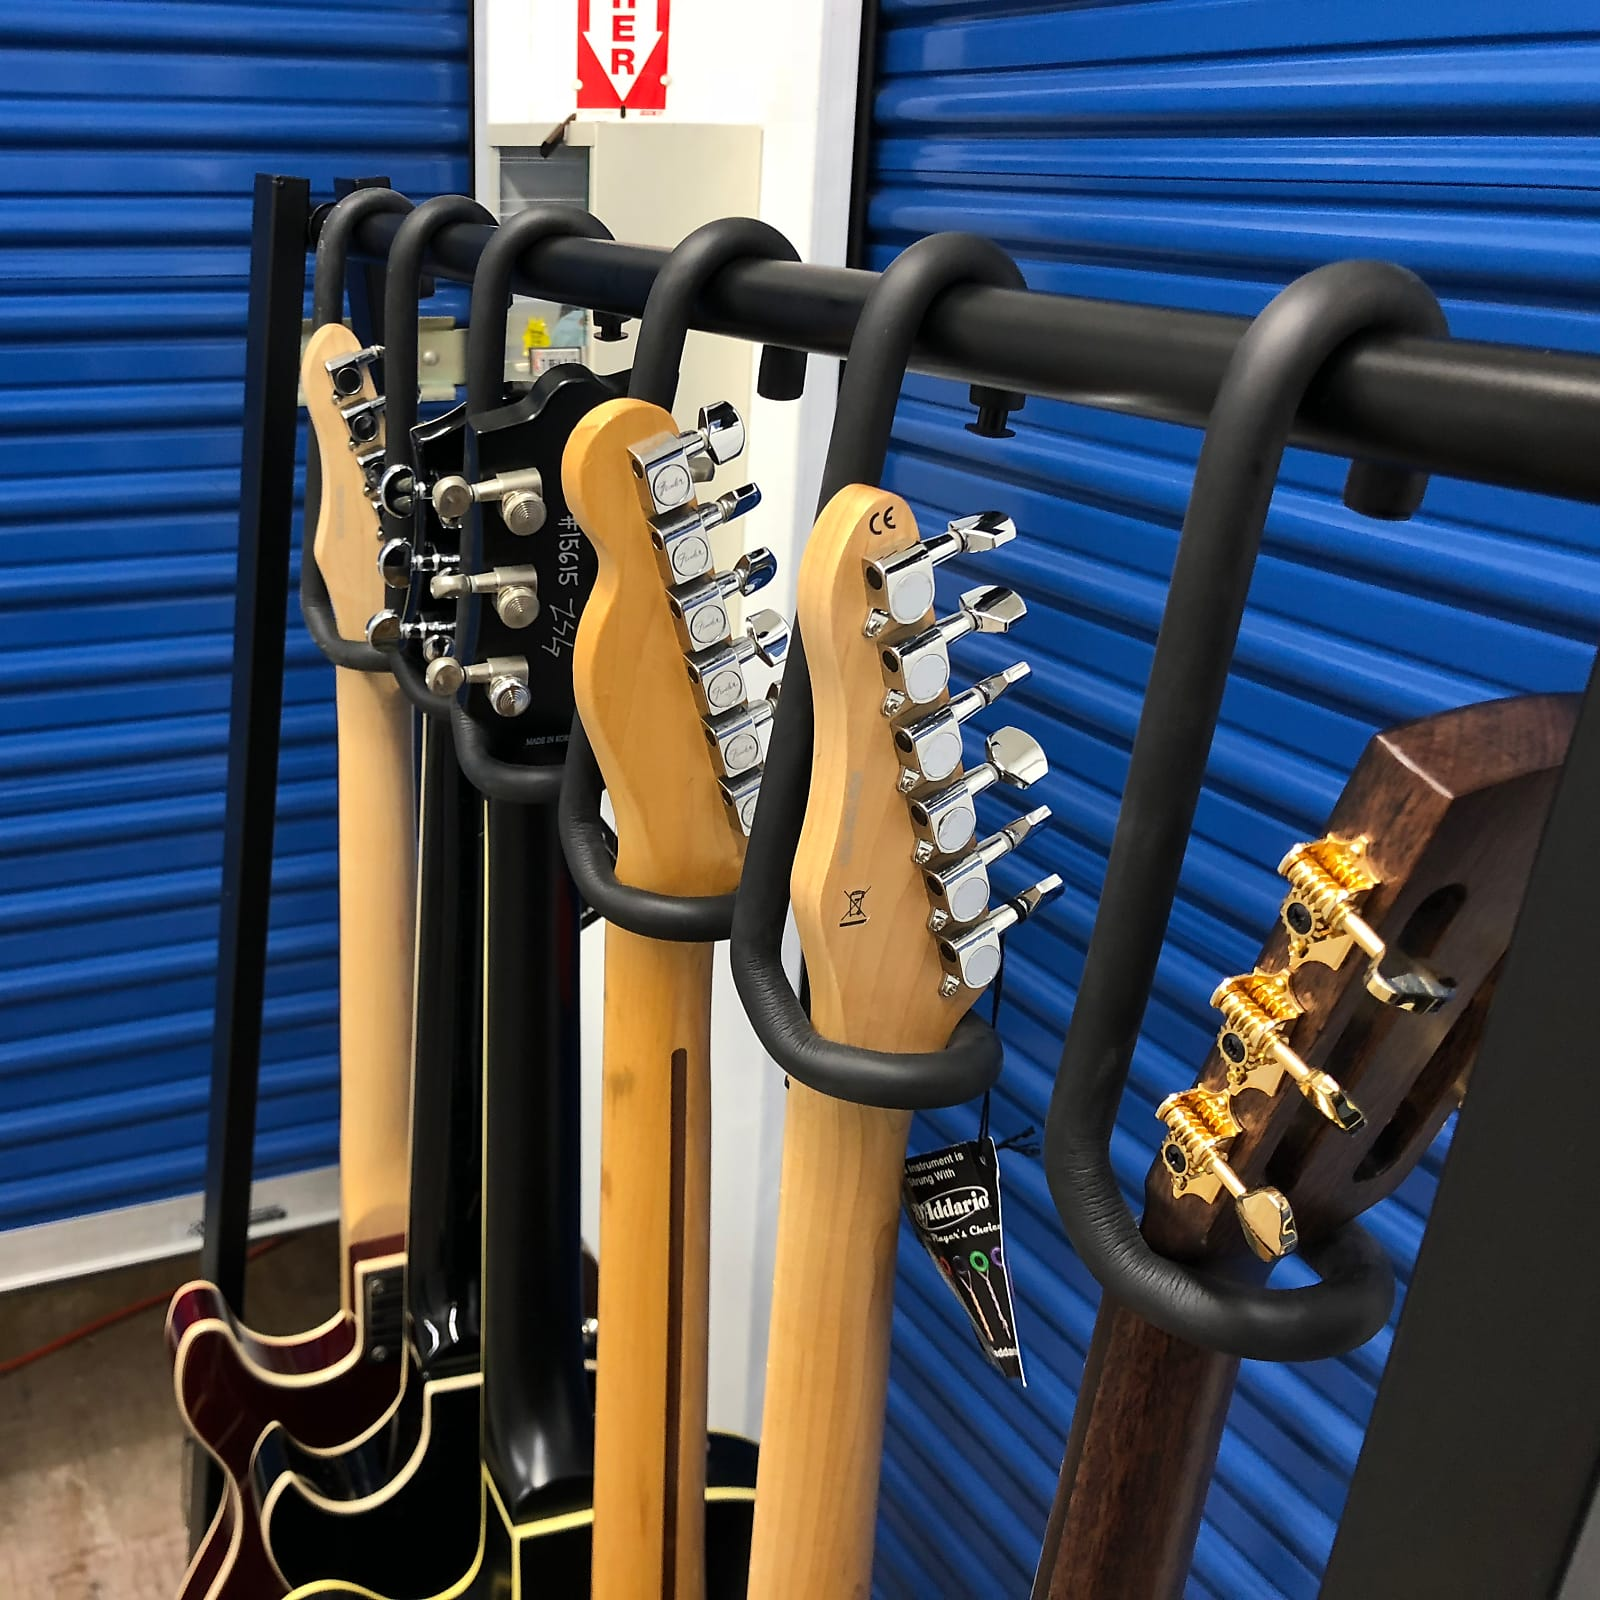 Bootlegger Guitar  Guitar Bar Hanger Rack System  Guitar Display with 4 Hangers